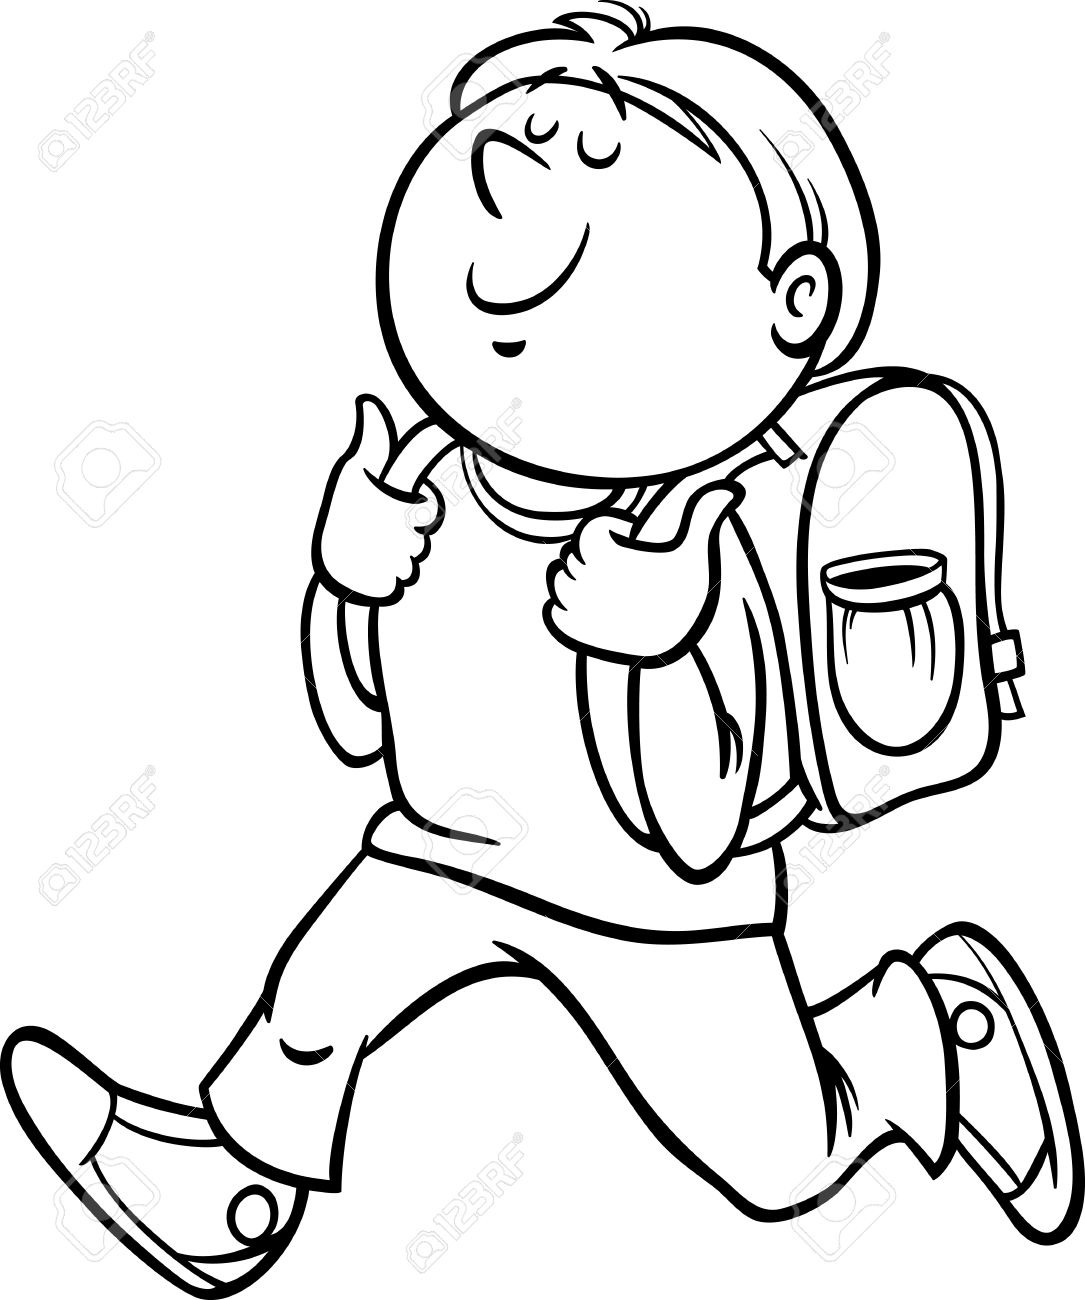 Students at school clipart black and white graphic transparent Black And White Cartoon Illustration Of Primary School ... graphic transparent